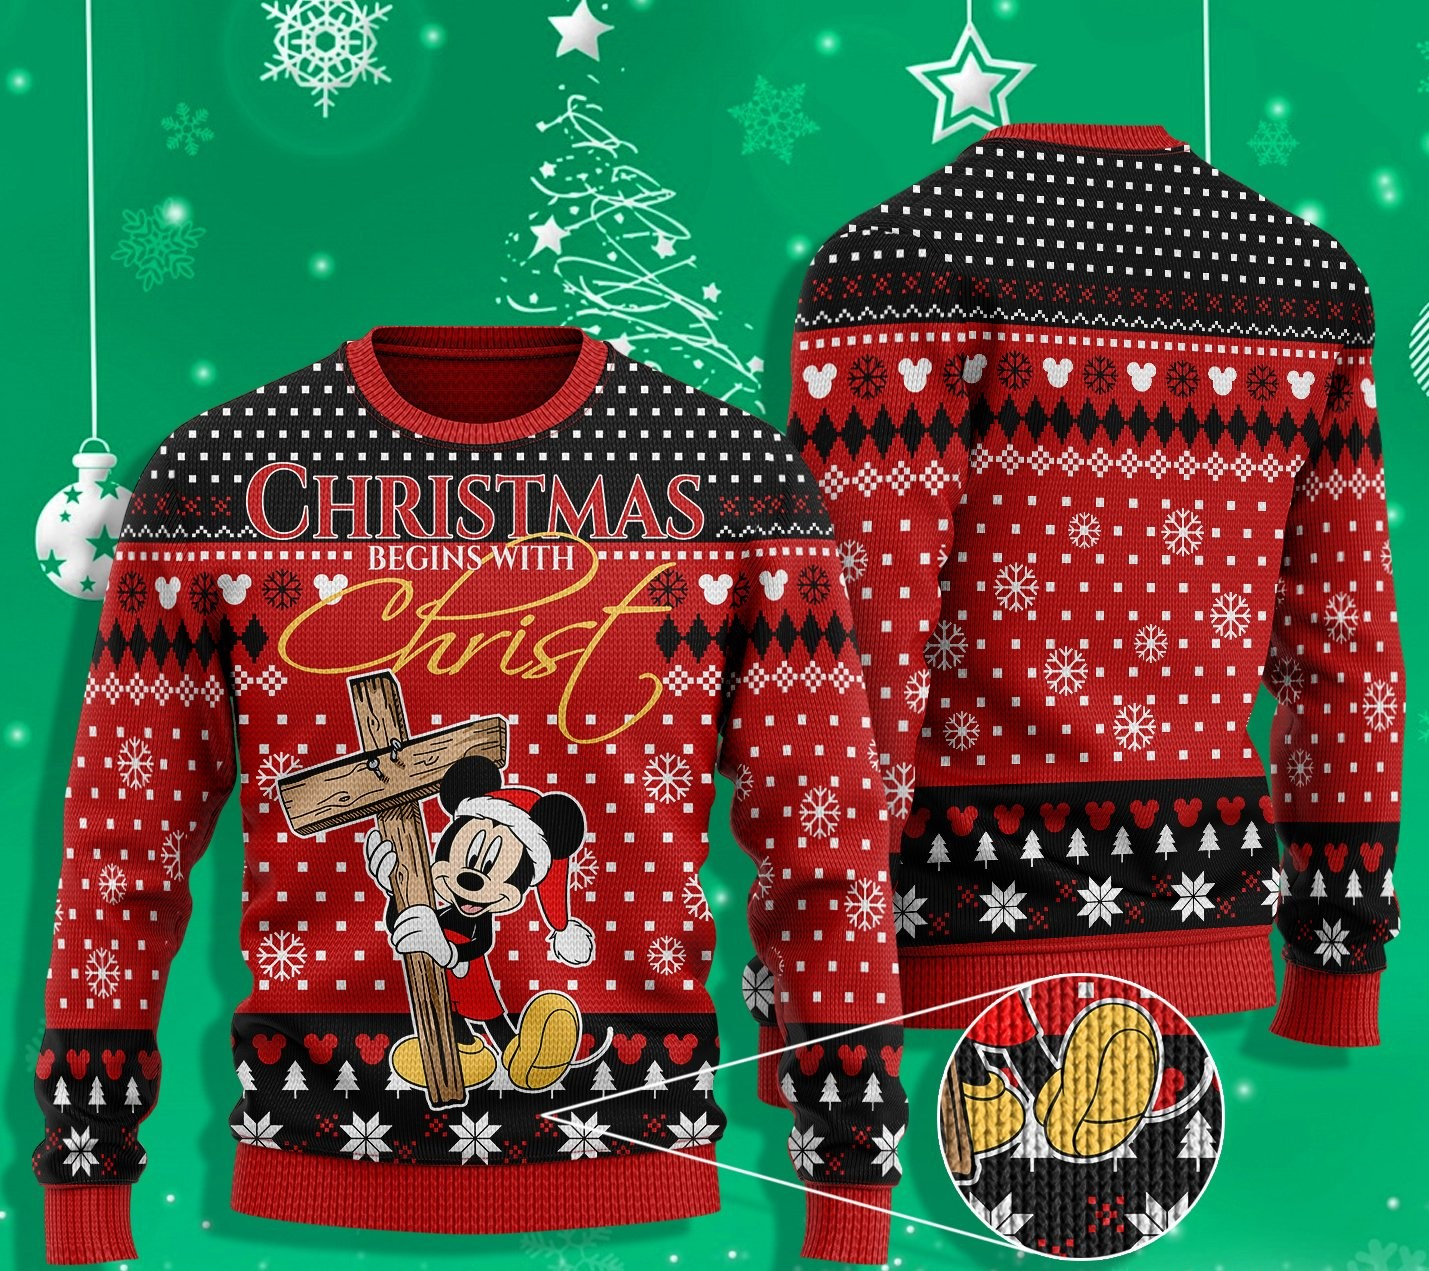 mickey mouse christmas begins with Christ ugly christmas sweater 2 - Copy (3)